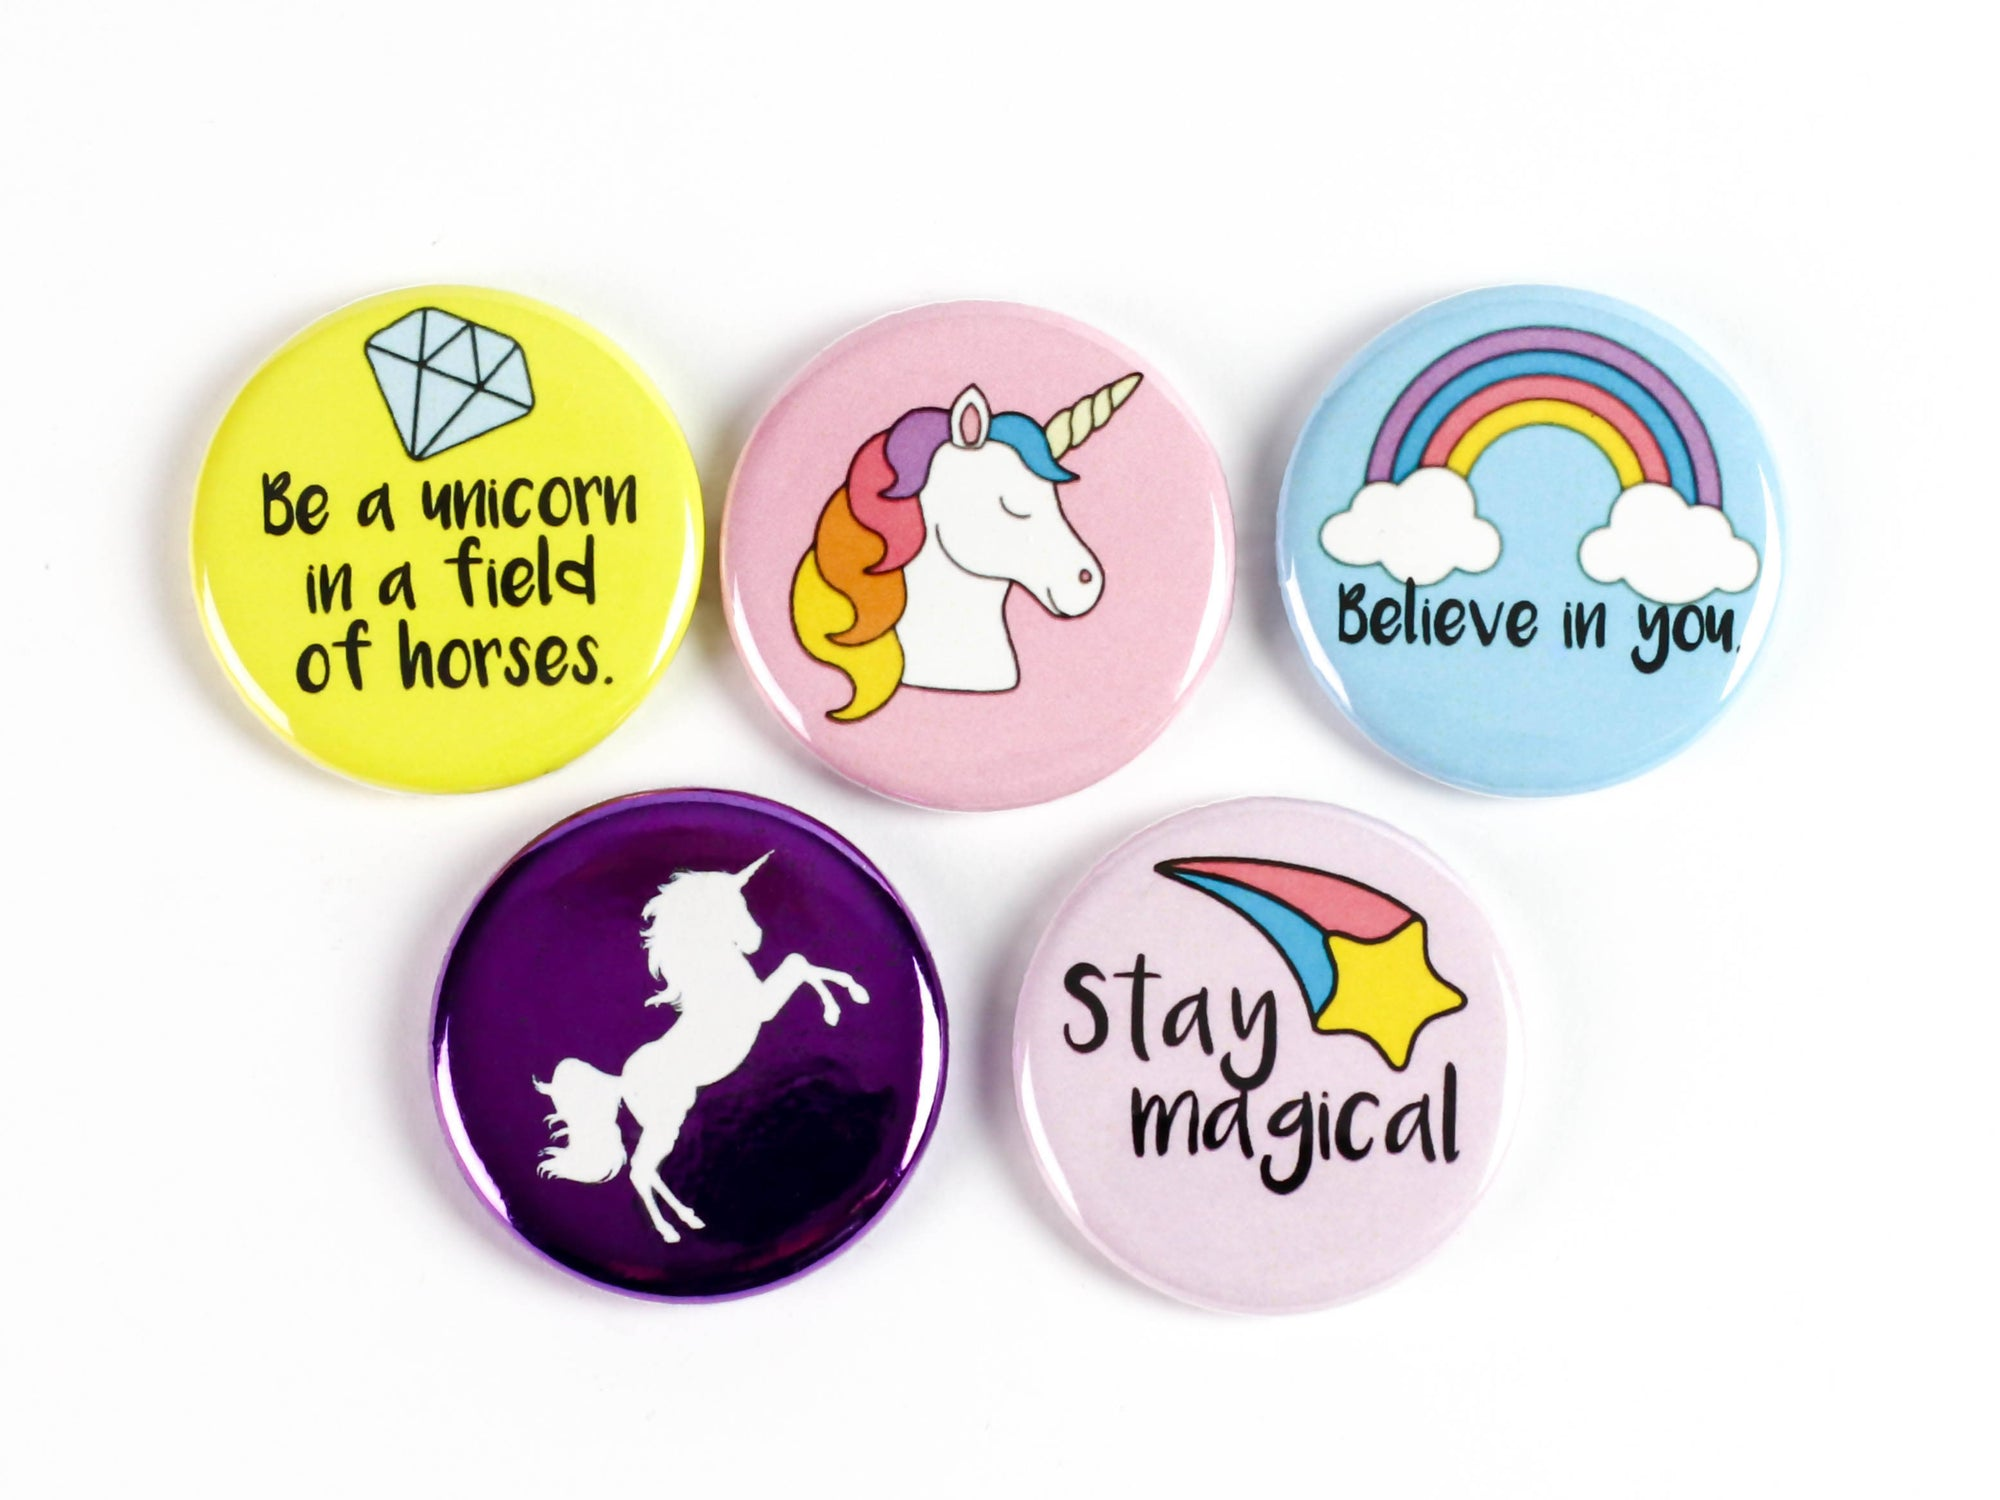 Shiny Unicorn! Magnets Or Pinback Buttons for Unicorn lovers!